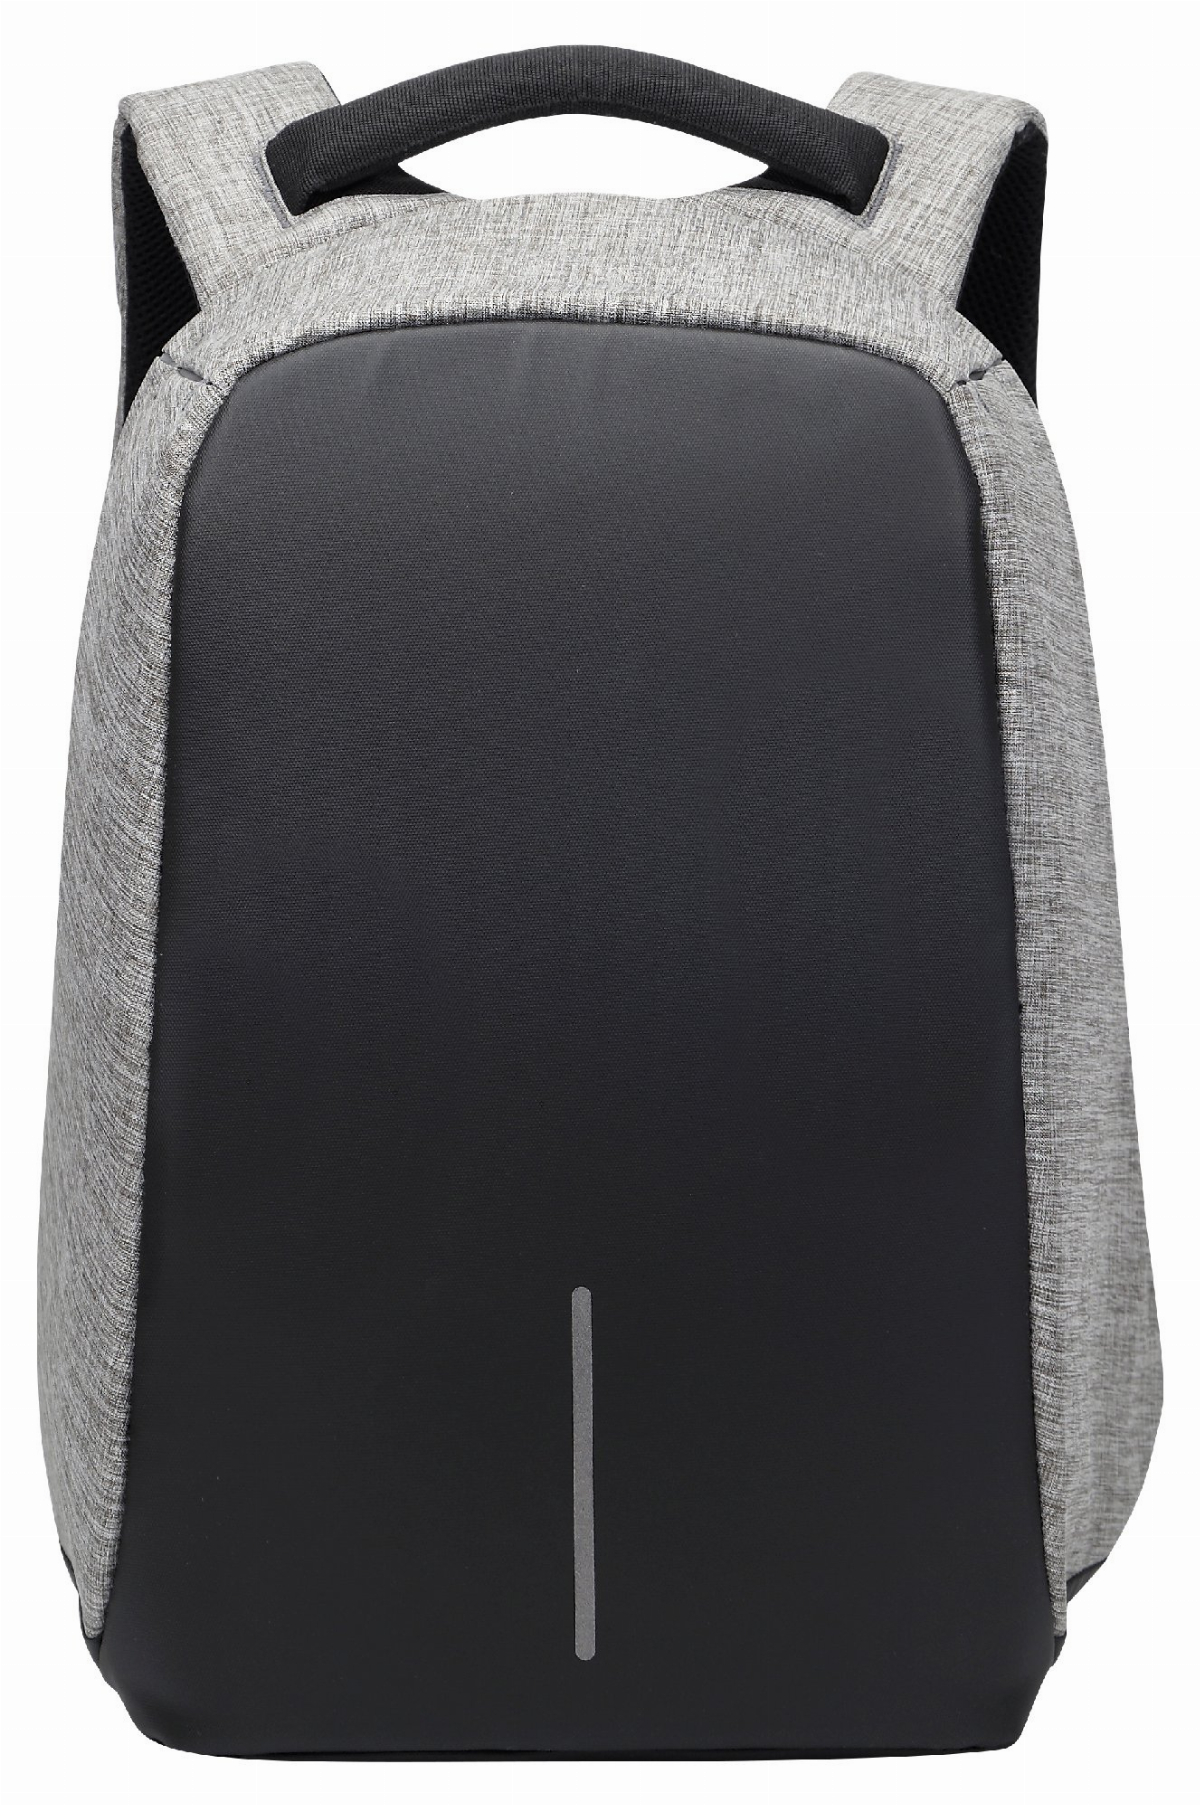 "Volkano раница за лаптоп Laptop Smart anti-theft Backpack 15.6"" - VK-7028-BKCH"